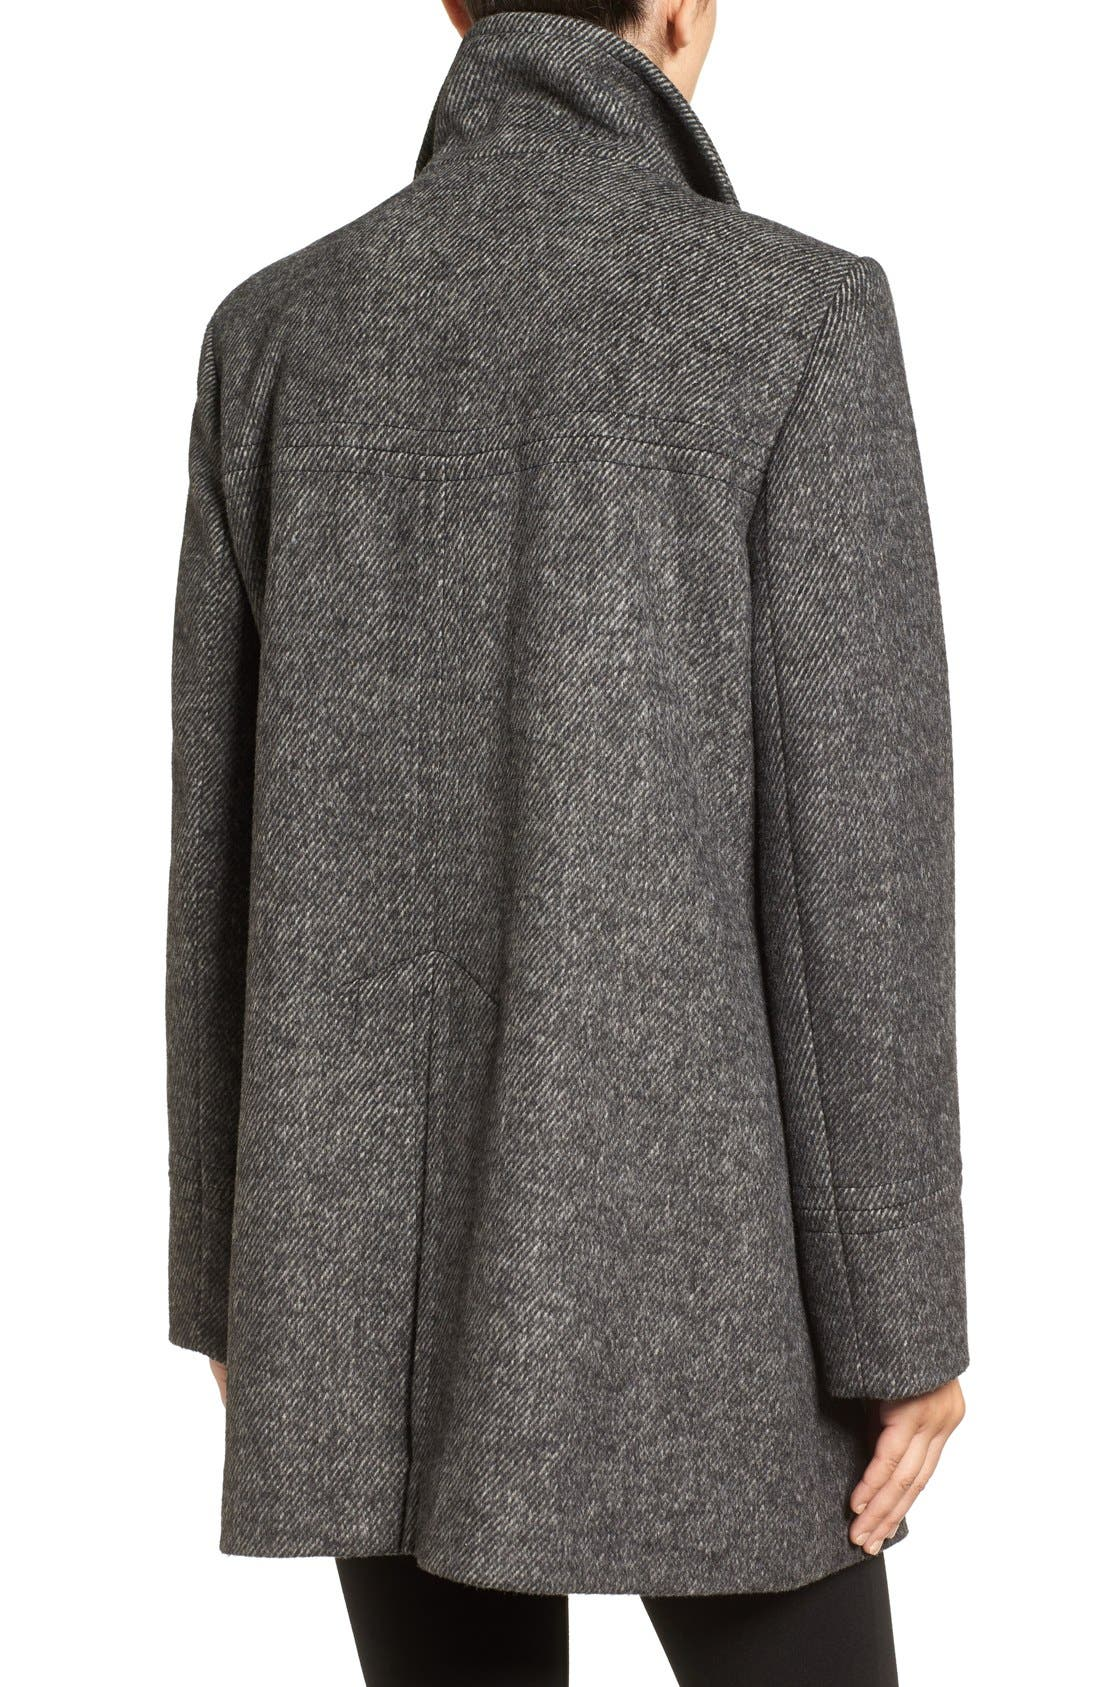 Double Breasted Swing Coat,                             Alternate thumbnail 2, color,                             Black/ Charcoal